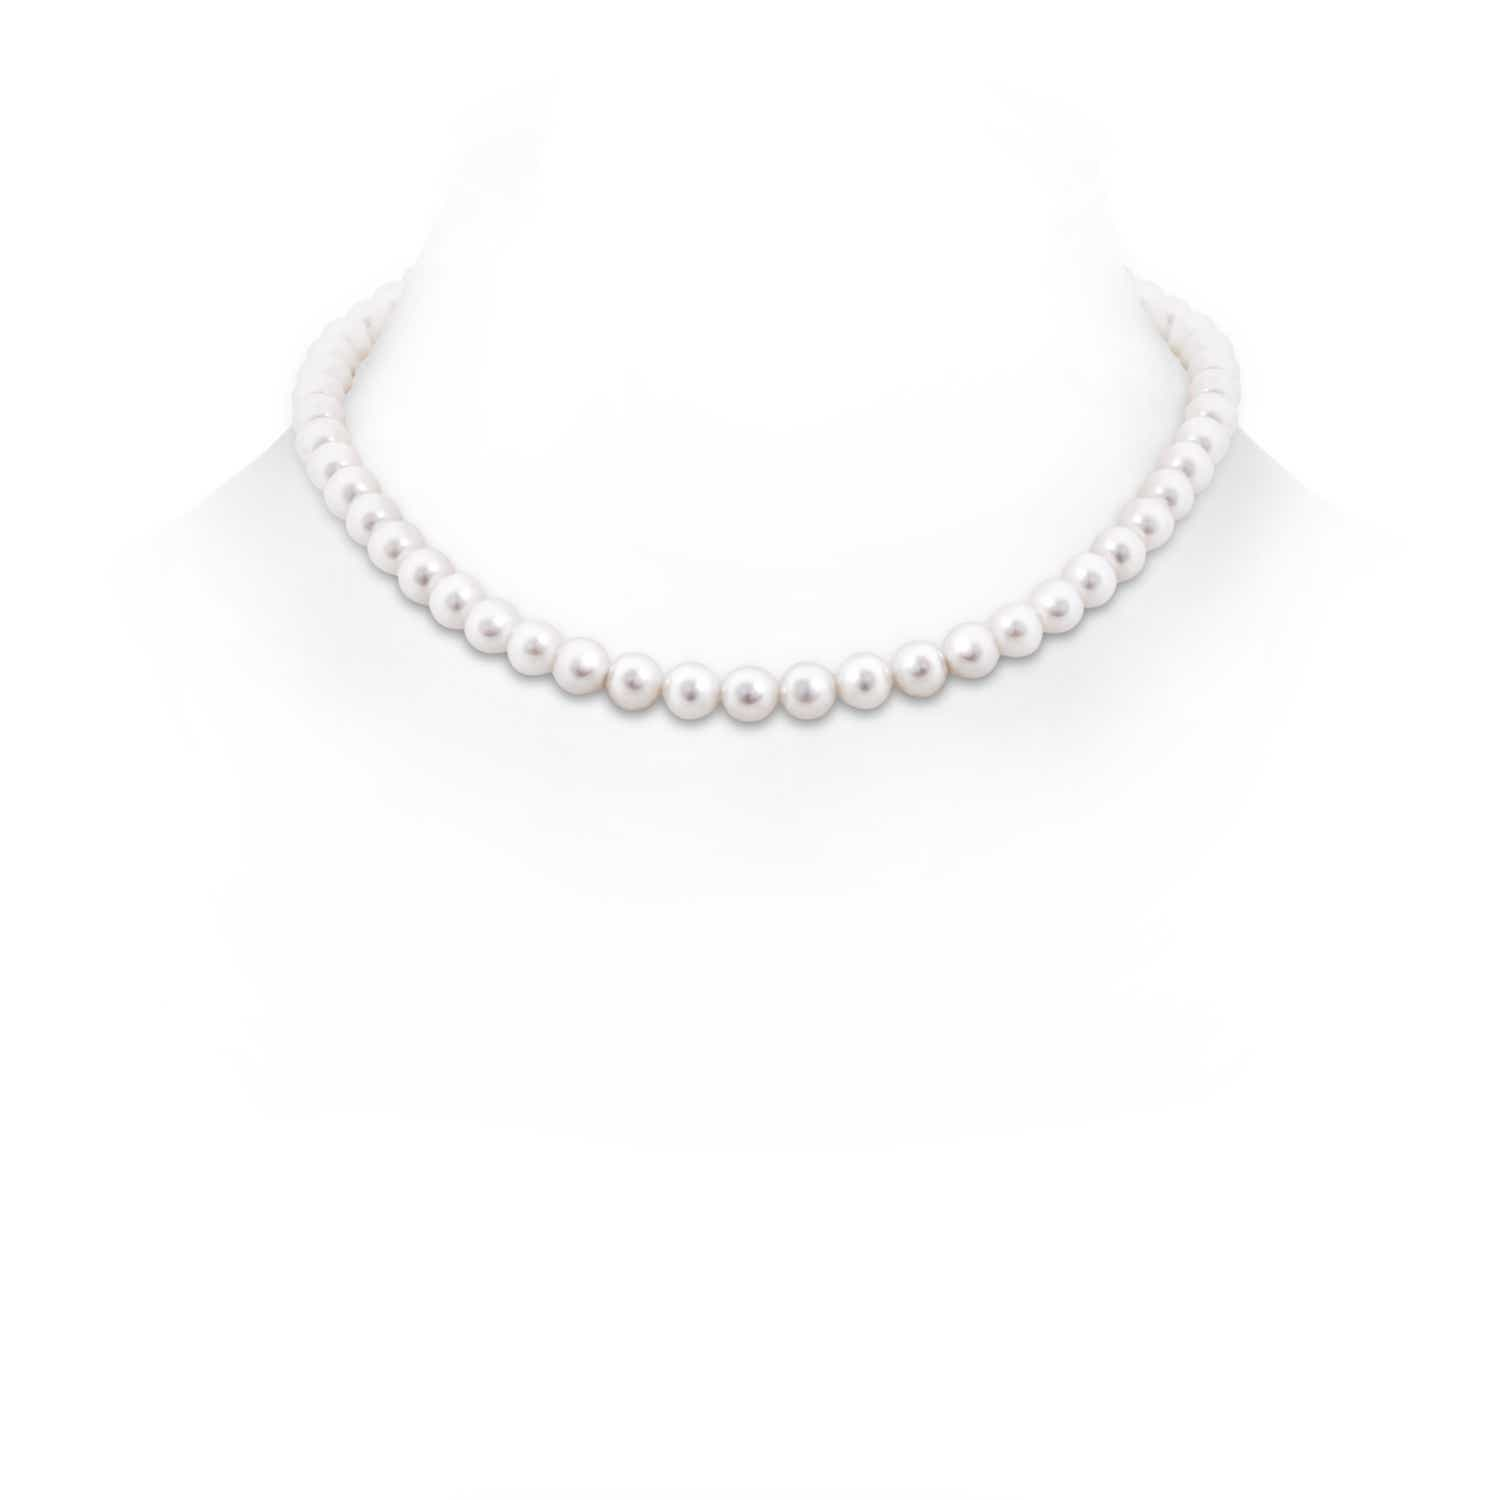 16 Freshwater Cultured Pearl Choker Necklace